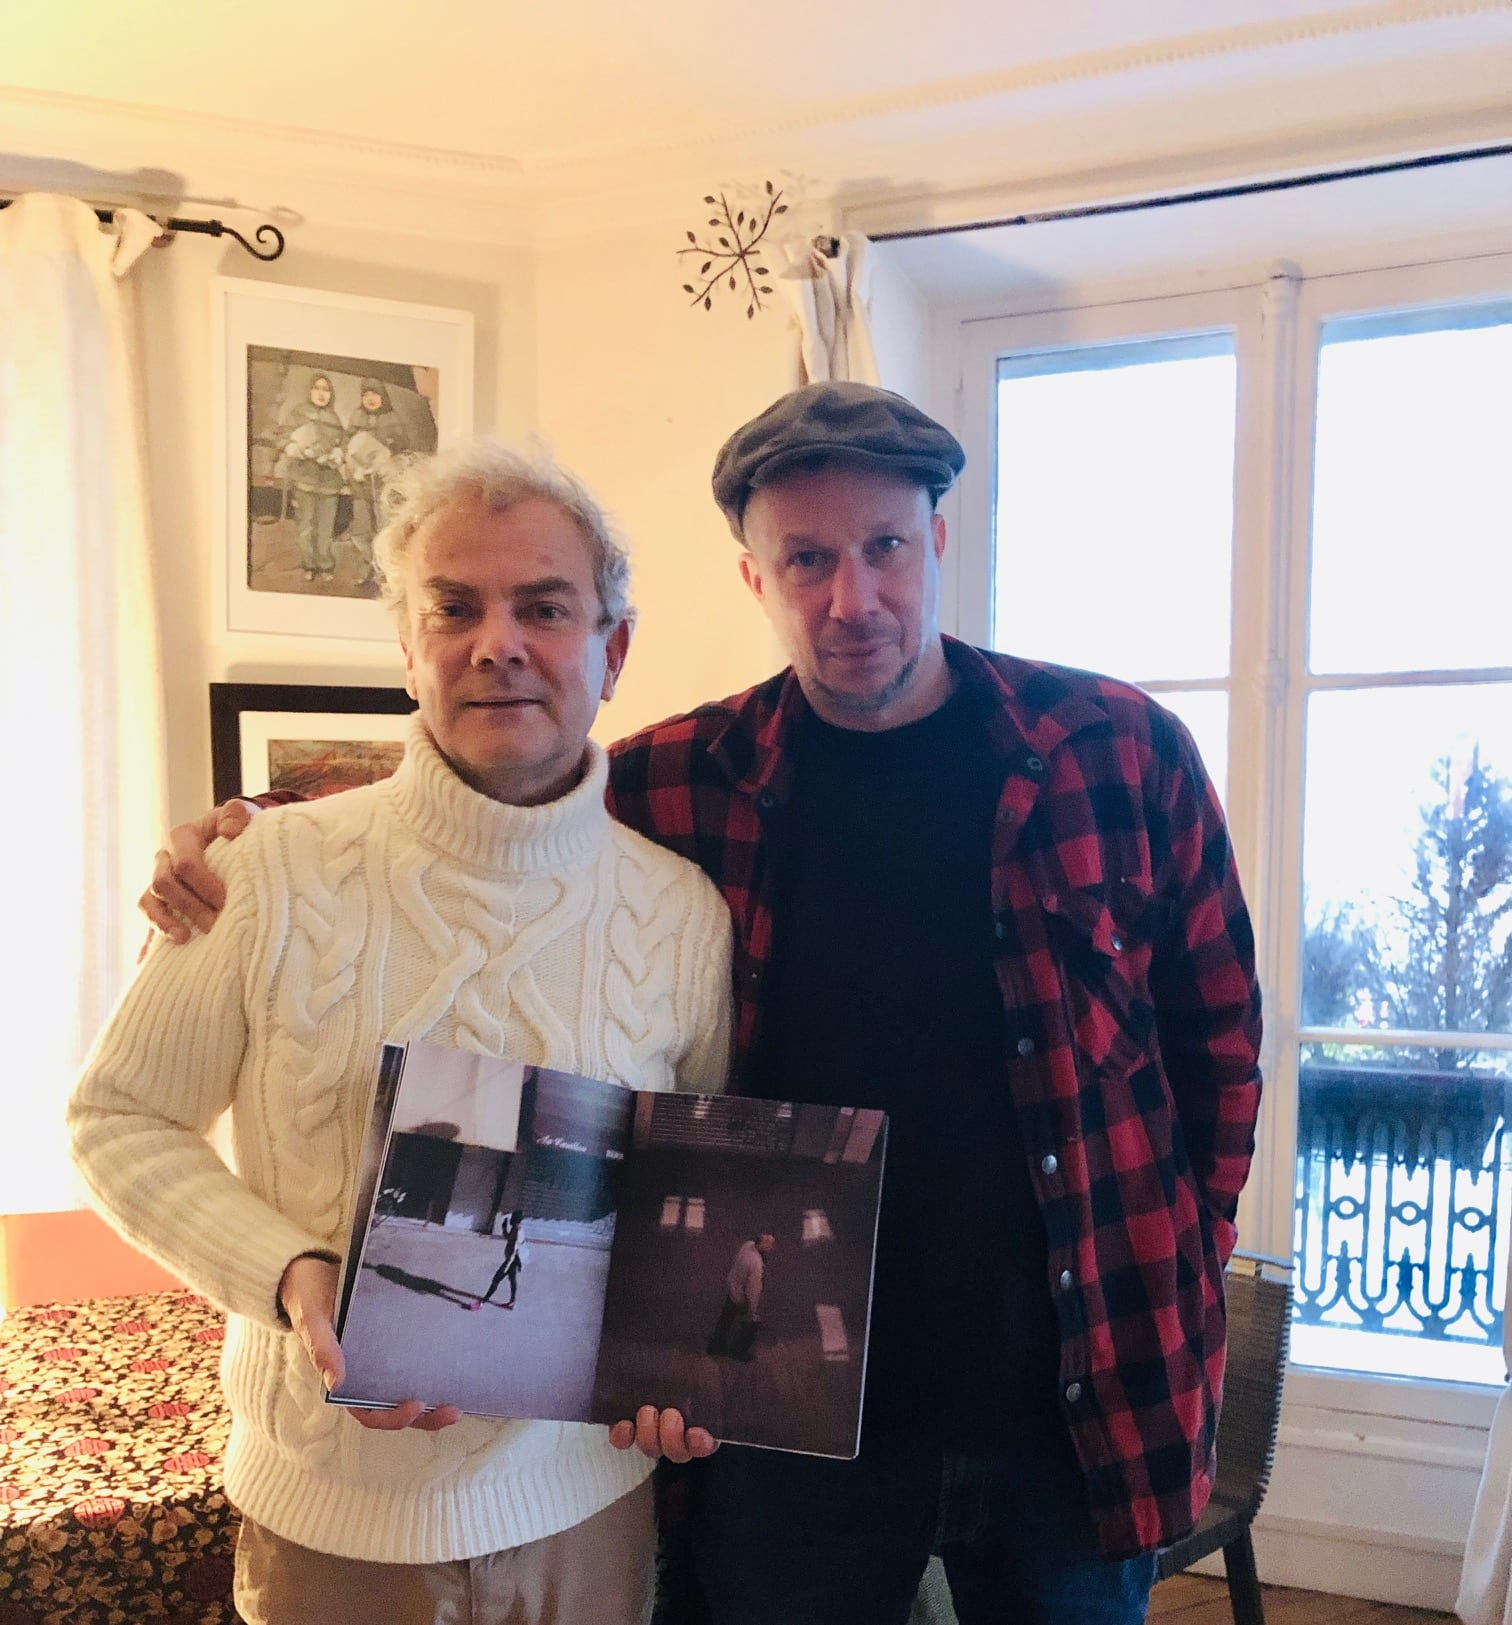 "#HappyPublisher, meeting at home this afternoon with the Swedish artist JH Engström, a photobook to come for 2019 ""Moving Inn-Looking Out"", a mixt of material: Polaroid Instant Fuji Film, 4×5 inch, 6×7…Limited edition of 500 copies!"